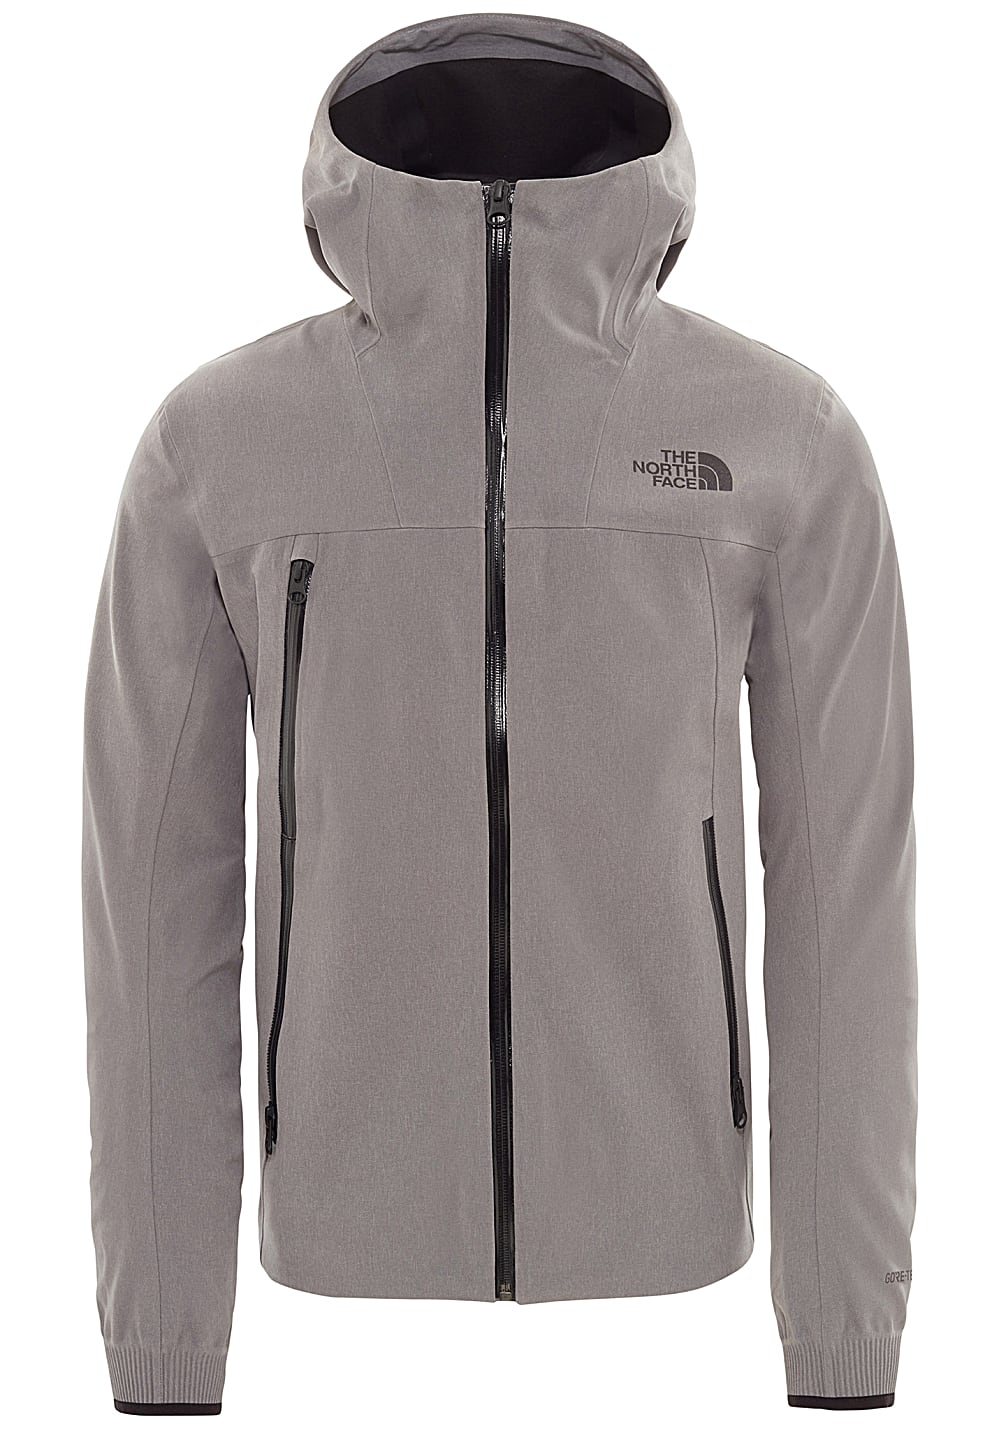 The North Face Apex Flex Goretex Giacche impermeabili grigio